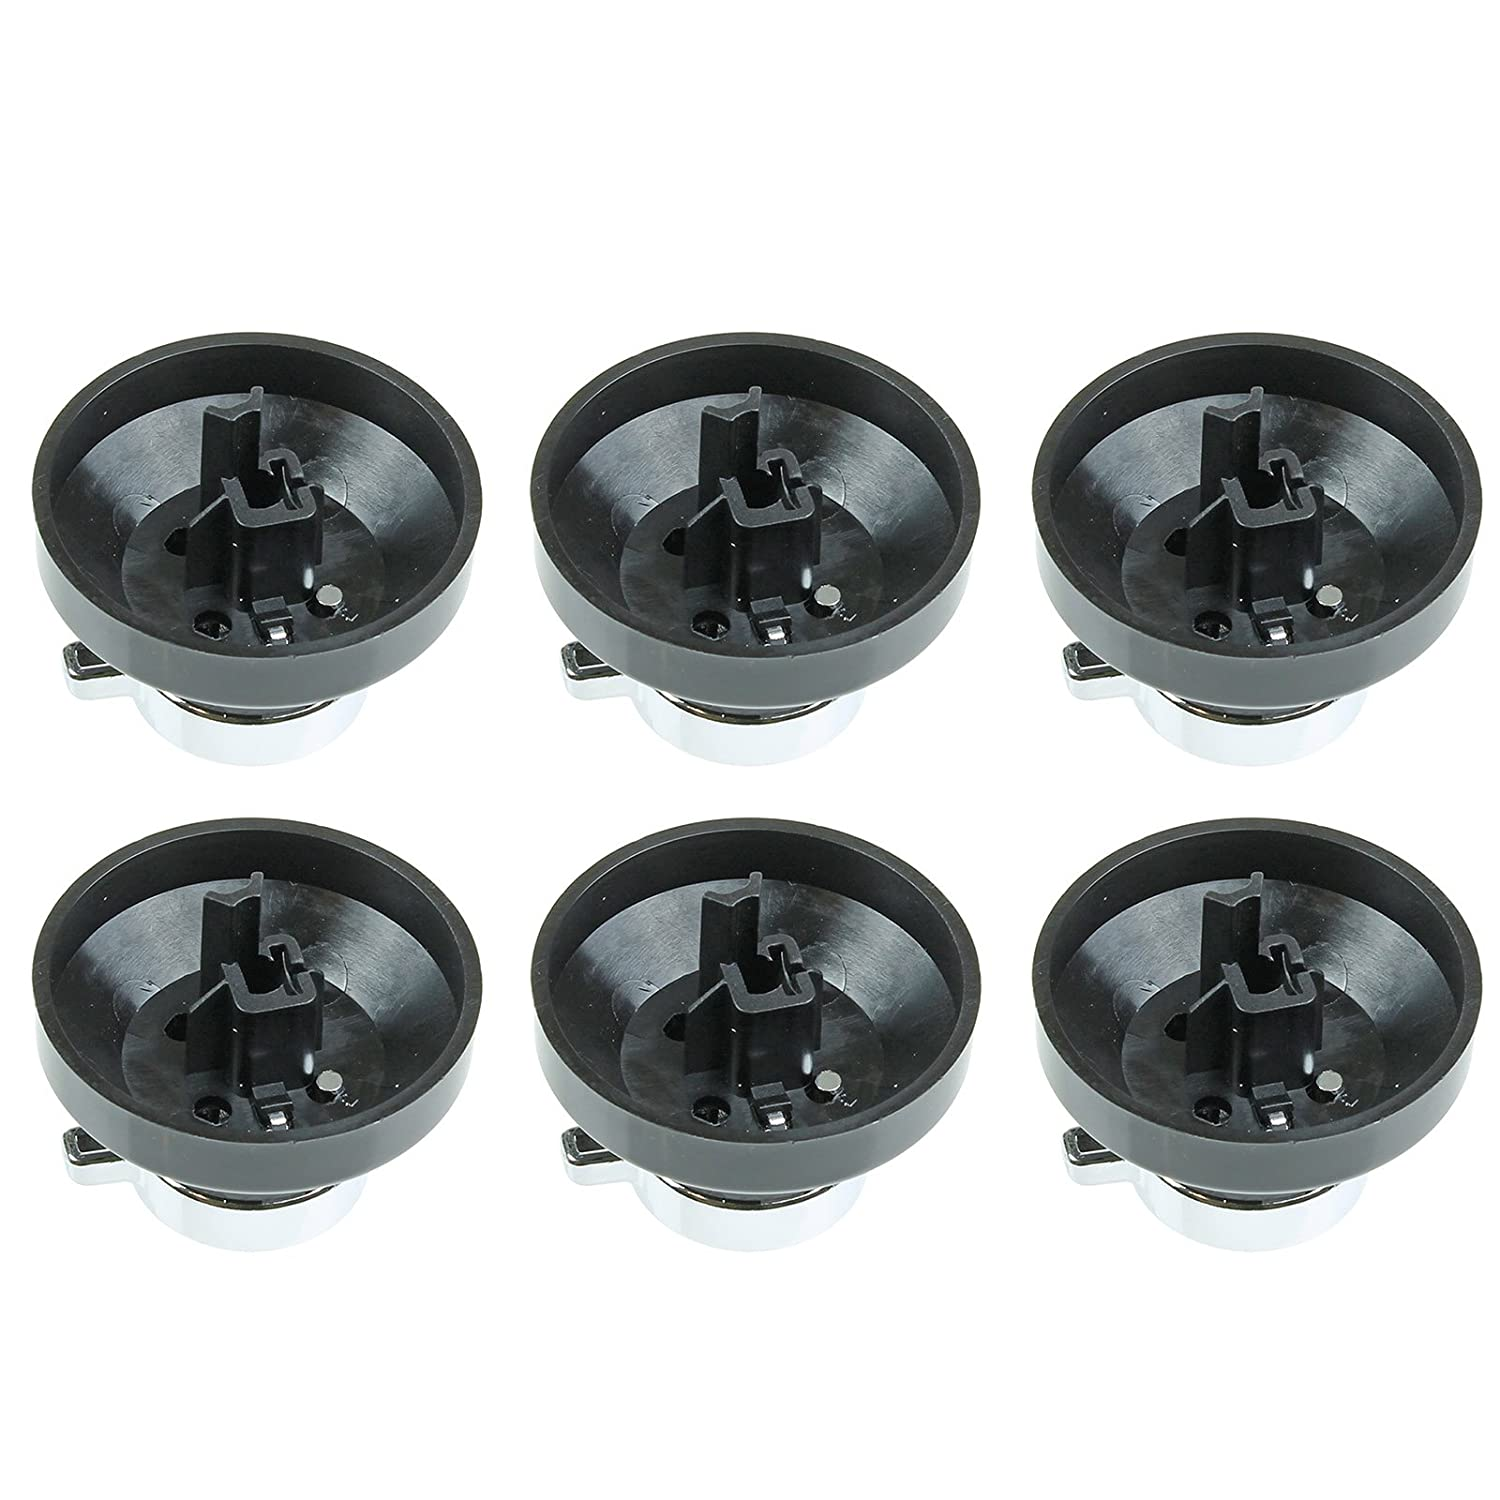 Stoves Gas Hob Oven Cooker Knobs Flame Control Switch Pack of 6, Black//Silver